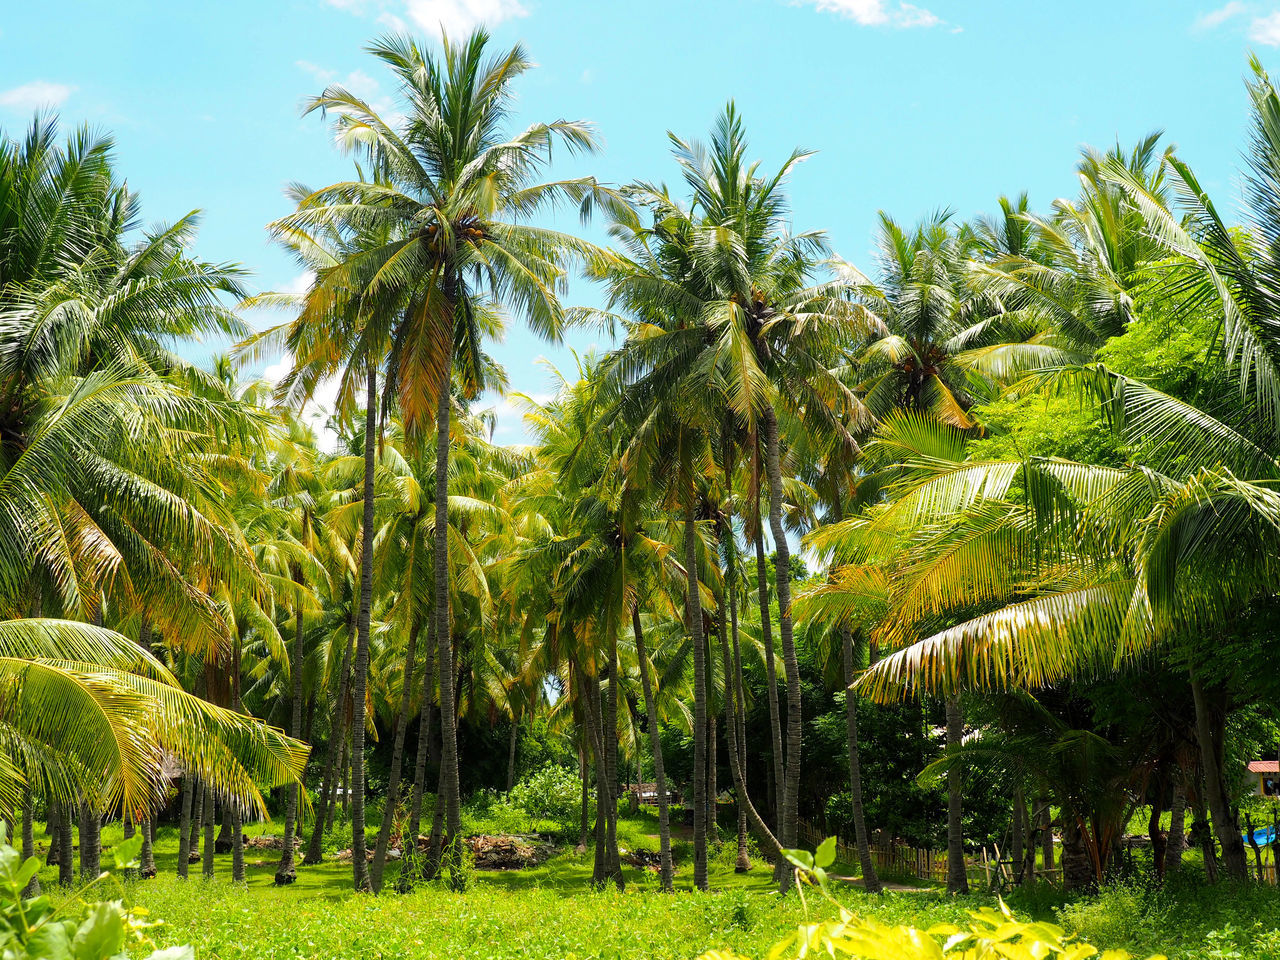 Beauty In Nature Coconut Palm Tree Day Field Grass Green Green Color Growing Growth Idyllic Landscape Lush Foliage Nature No People Non-urban Scene Outdoors Palm Tree Plant Scenics Sky Tranquil Scene Tranquility Tree Tree Trunk Tropical Climate